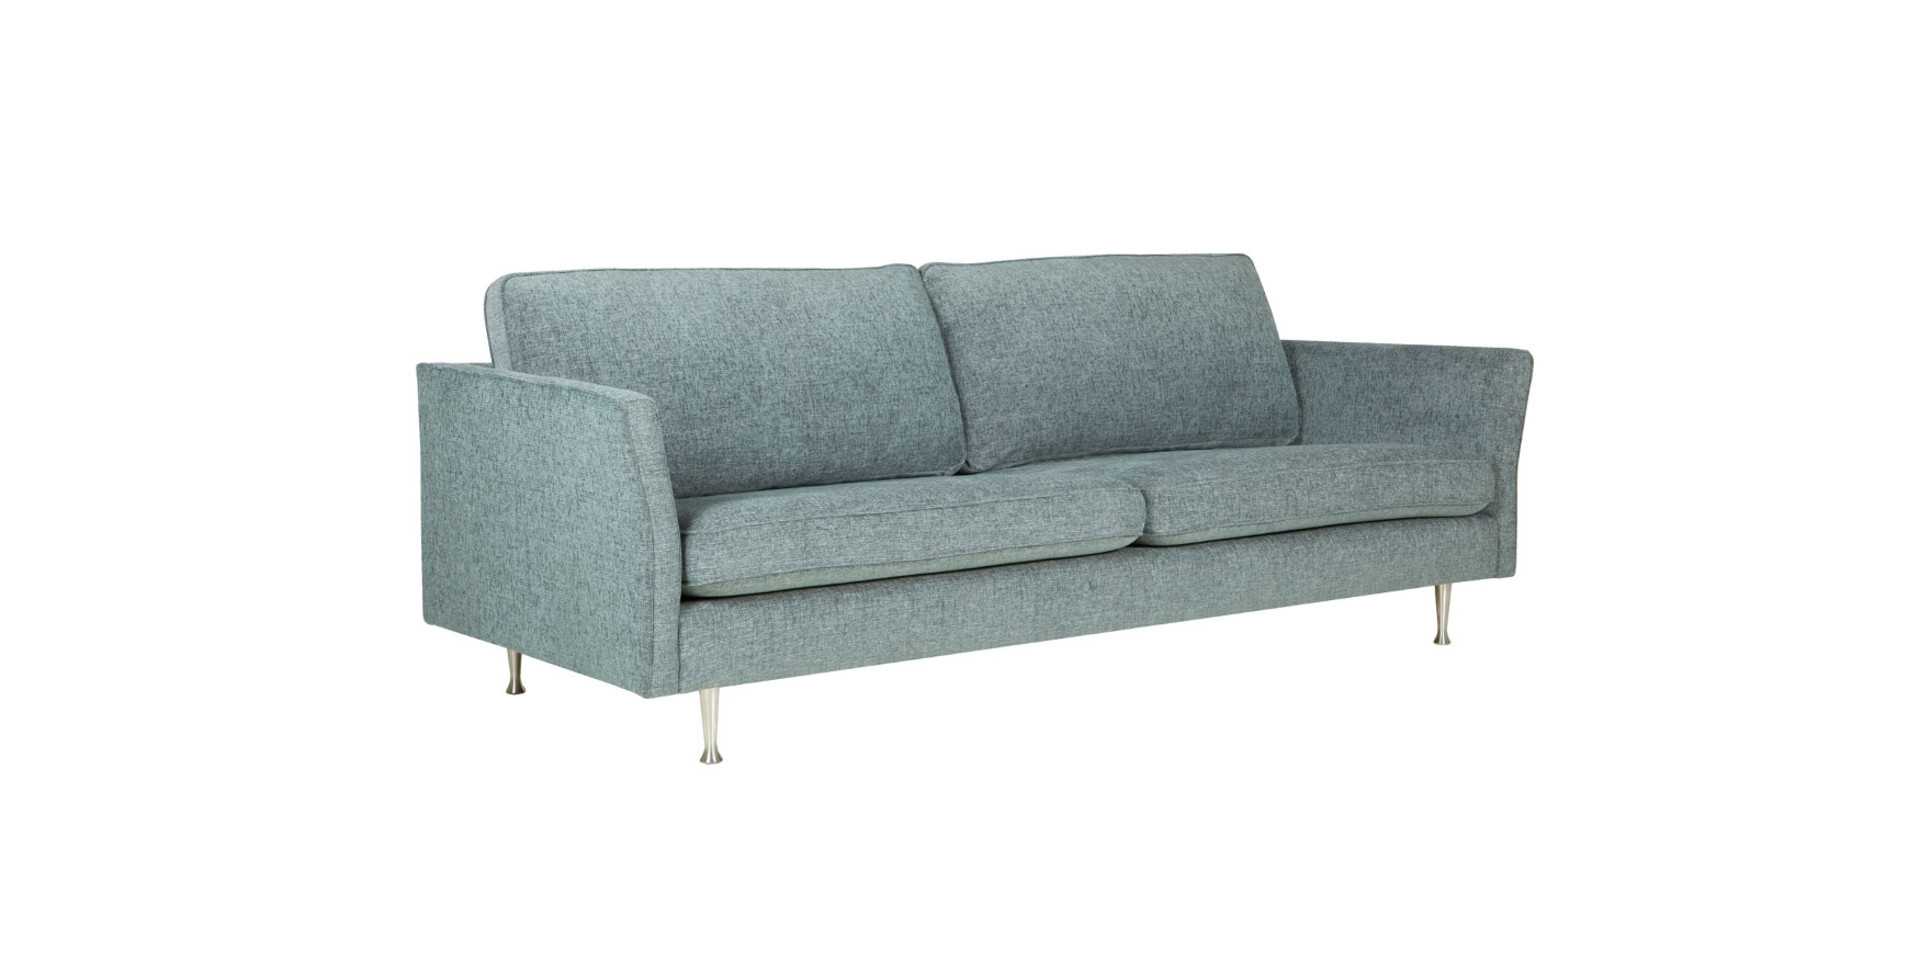 sits-freddy-canape-3seater_divine40_light_blue_2_0_0